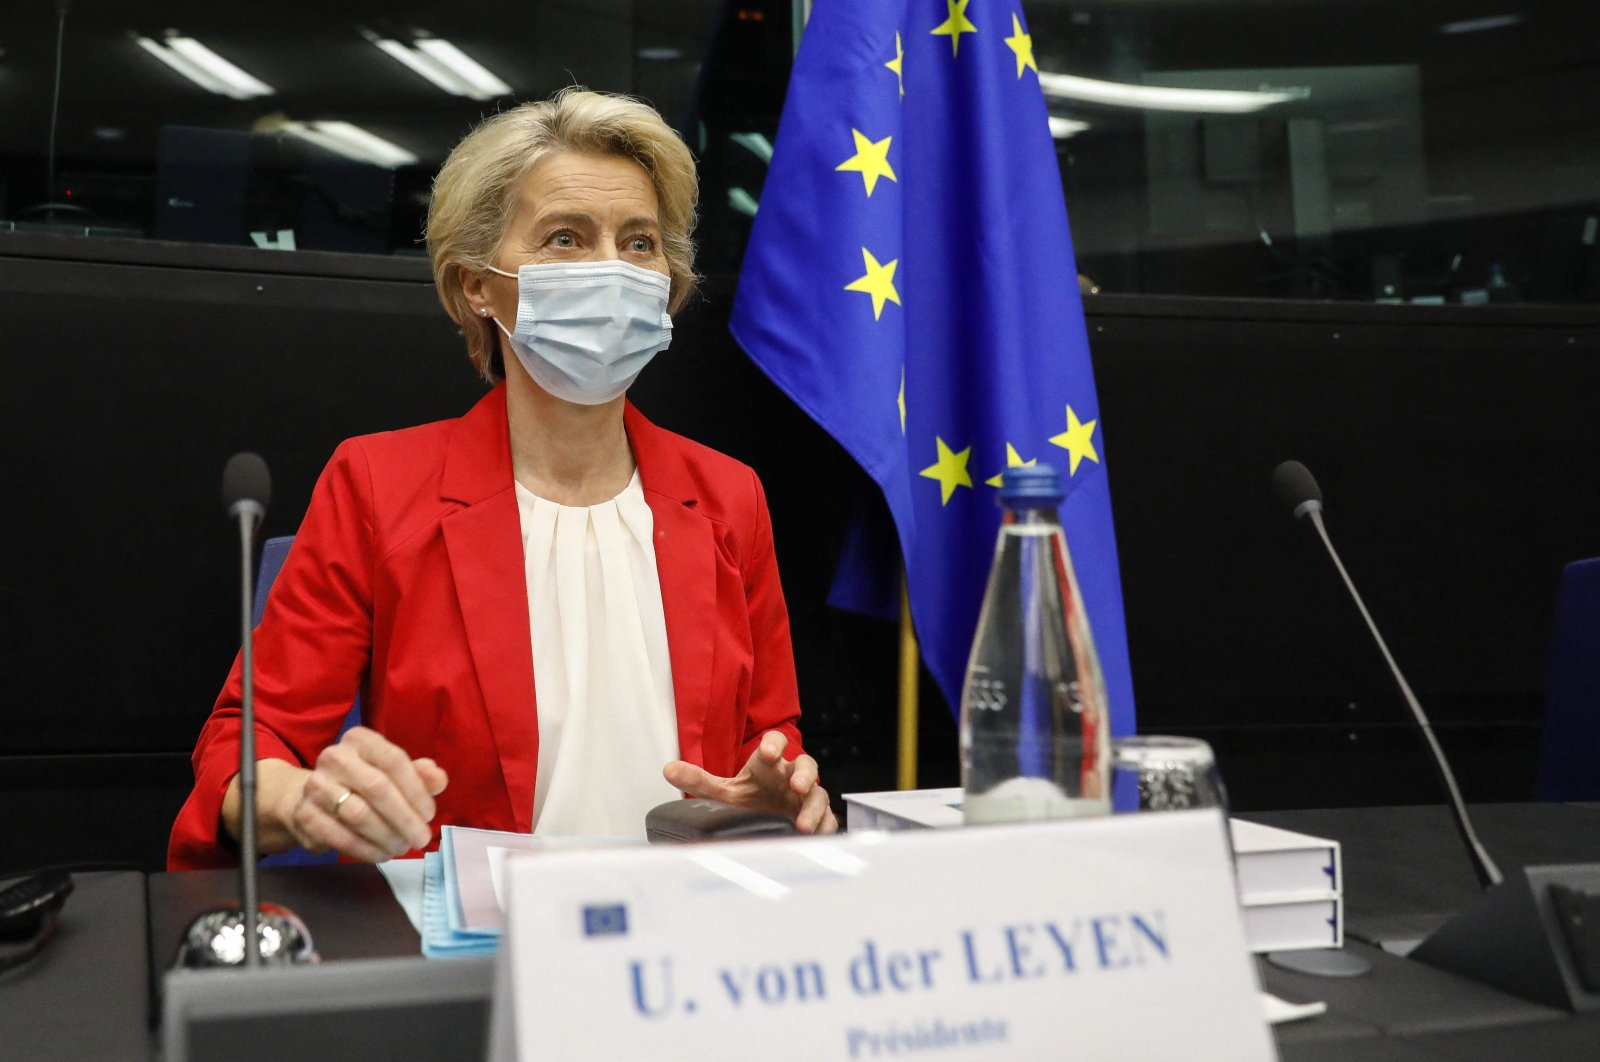 European Commission President Ursula von der Leyen, wearing a mask, poses prior to the start of the meeting of the College of Commissioners at the European Parliament in Strasbourg, France, Sept. 14, 2021. (AFP Photo)